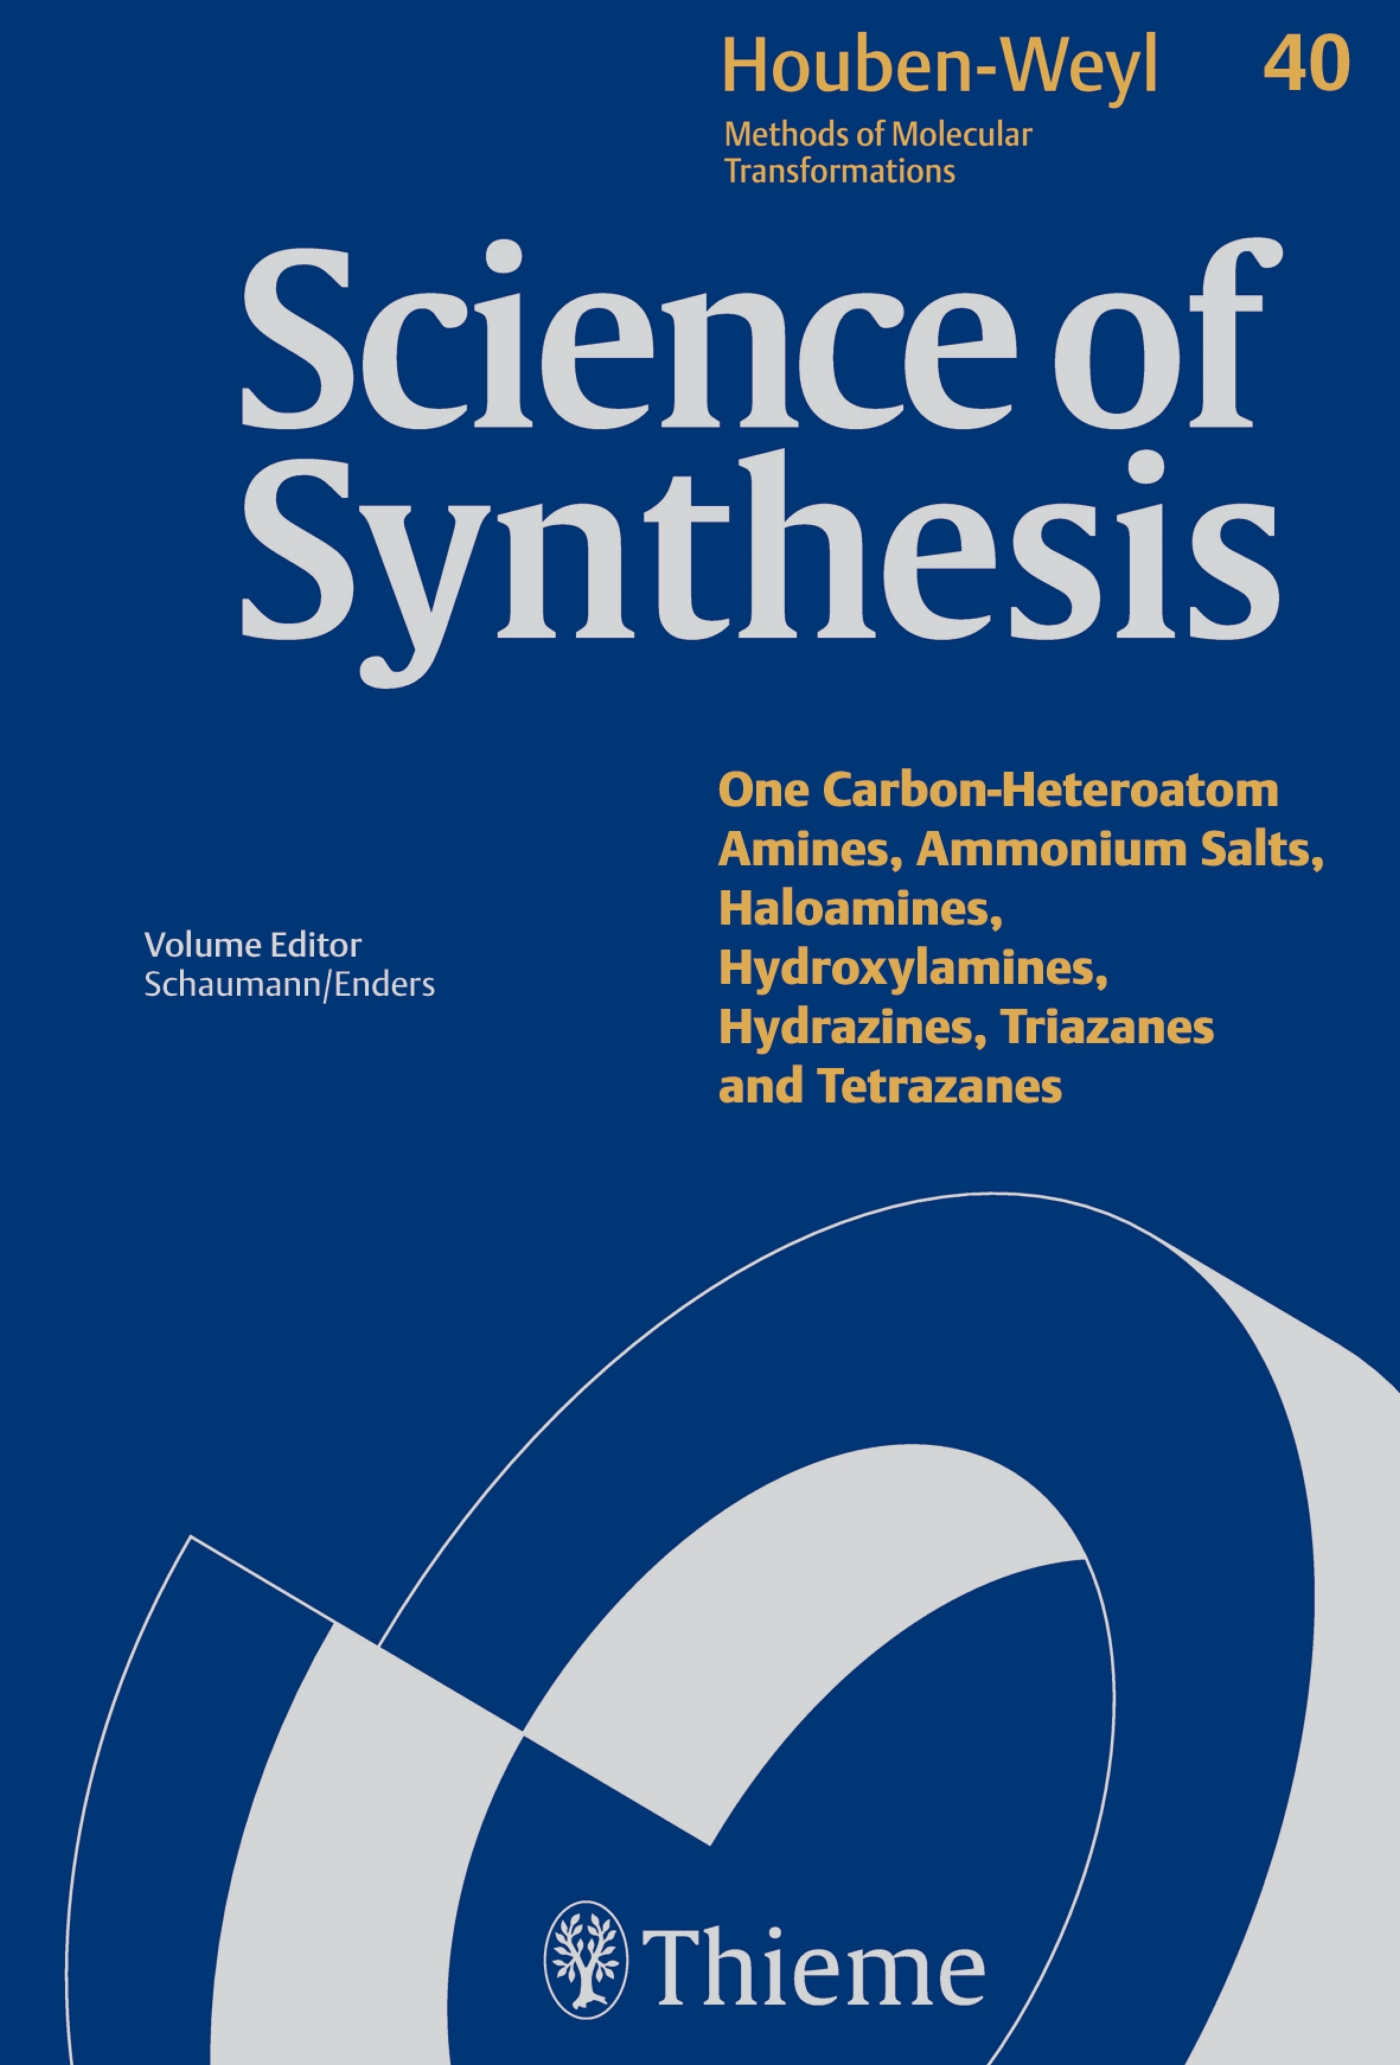 Science of Synthesis: Houben-Weyl Methods of Molecular Transformations  Vol. 40a